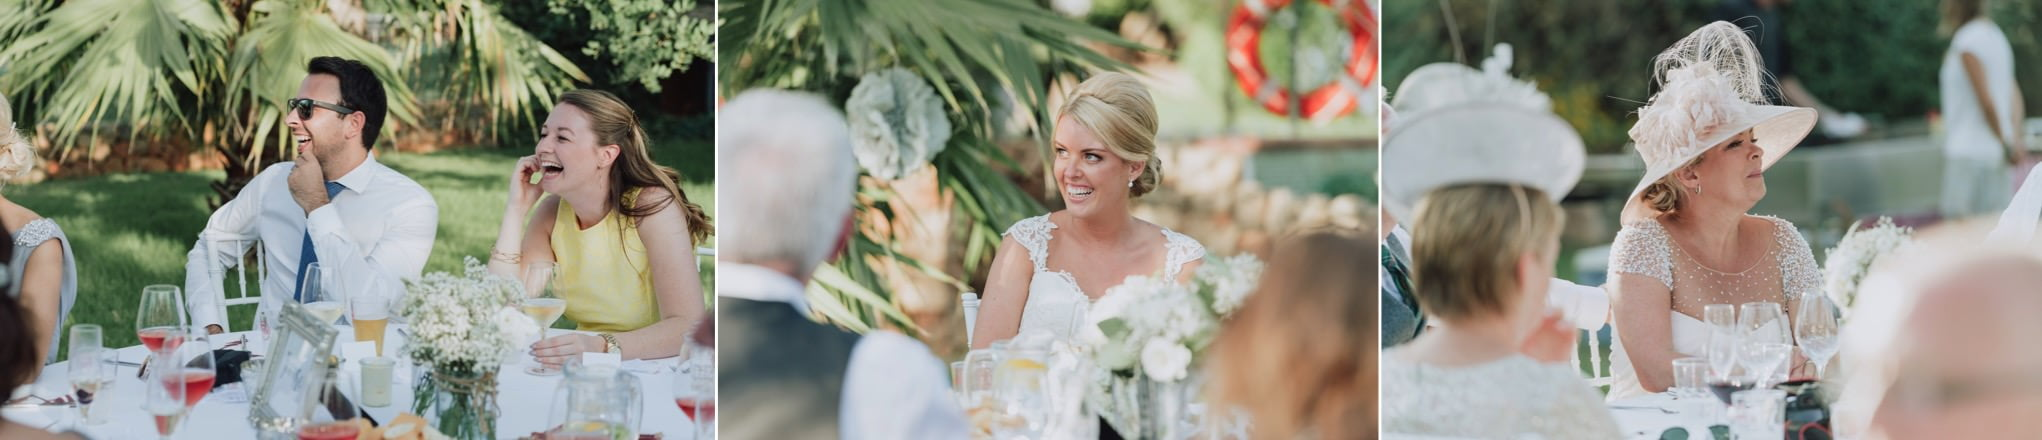 Can gall; ibiza wedding; donna murray photography72